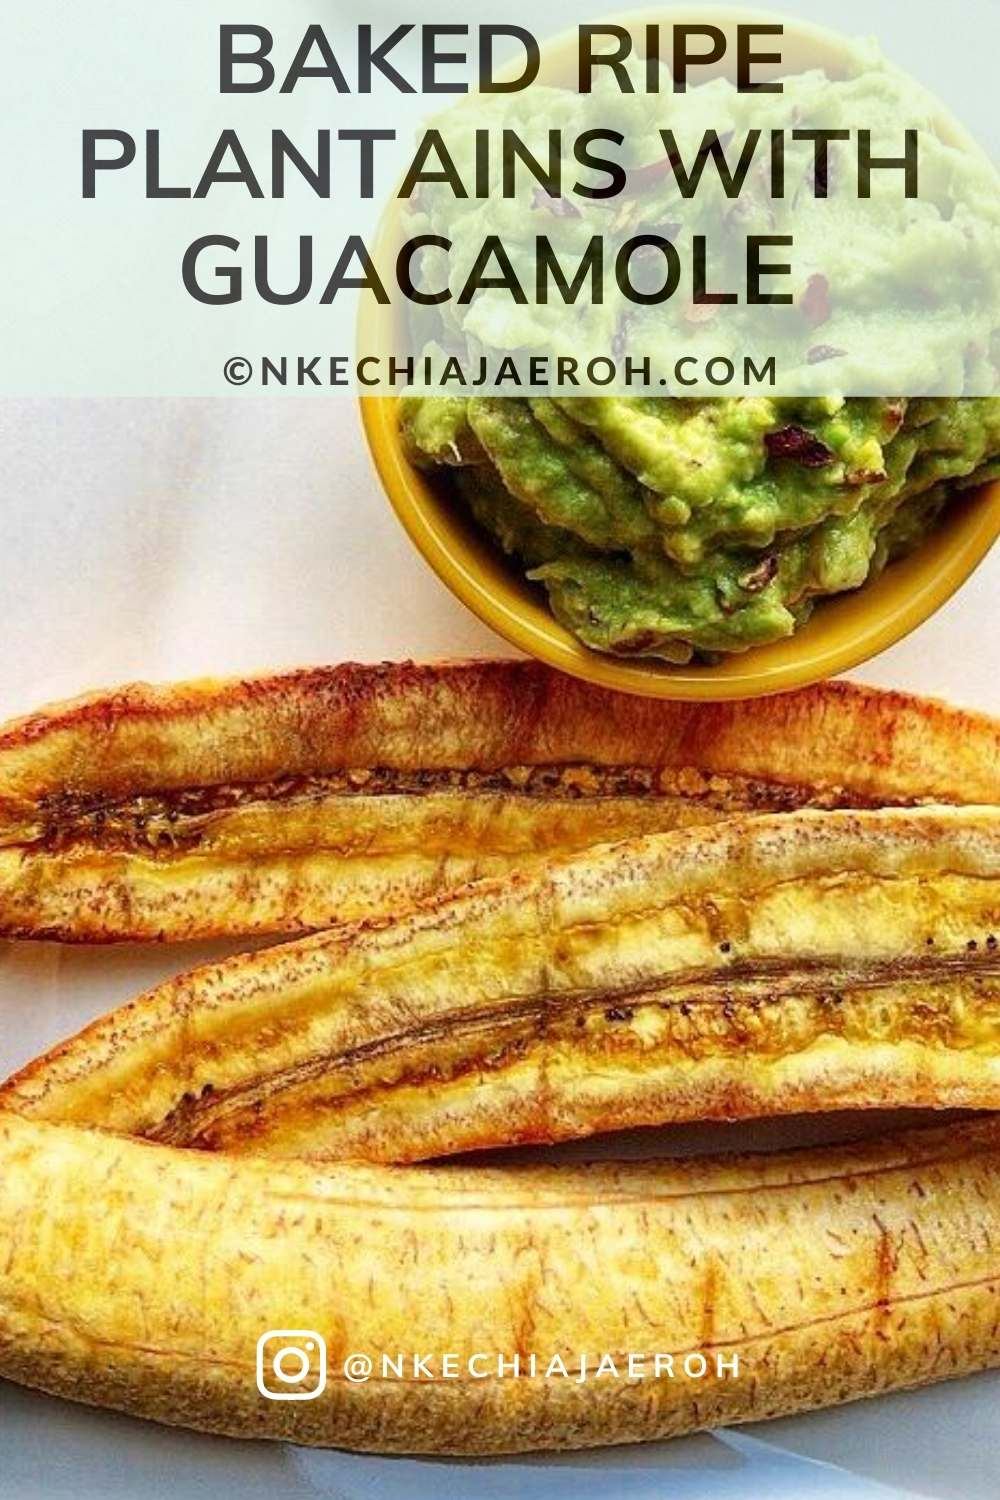 These oven-roasted perfectly baked ripe plantains served with guacamole is mouthwatering and insanely delicious! Also known as Boli – a very popular Nigerian street food. This Nigerian baked ripe sweet yellow plantain recipe is vegan, paleo-friendly, gluten-free, and oven-baked to perfection. These roasted plantains are breakfast, lunch, dinner, or snack! They are great with pepper compote, groundnuts (peanuts), or guacamole. #Plantains #Bakeplantains #Roastedplantains #sweetplantains